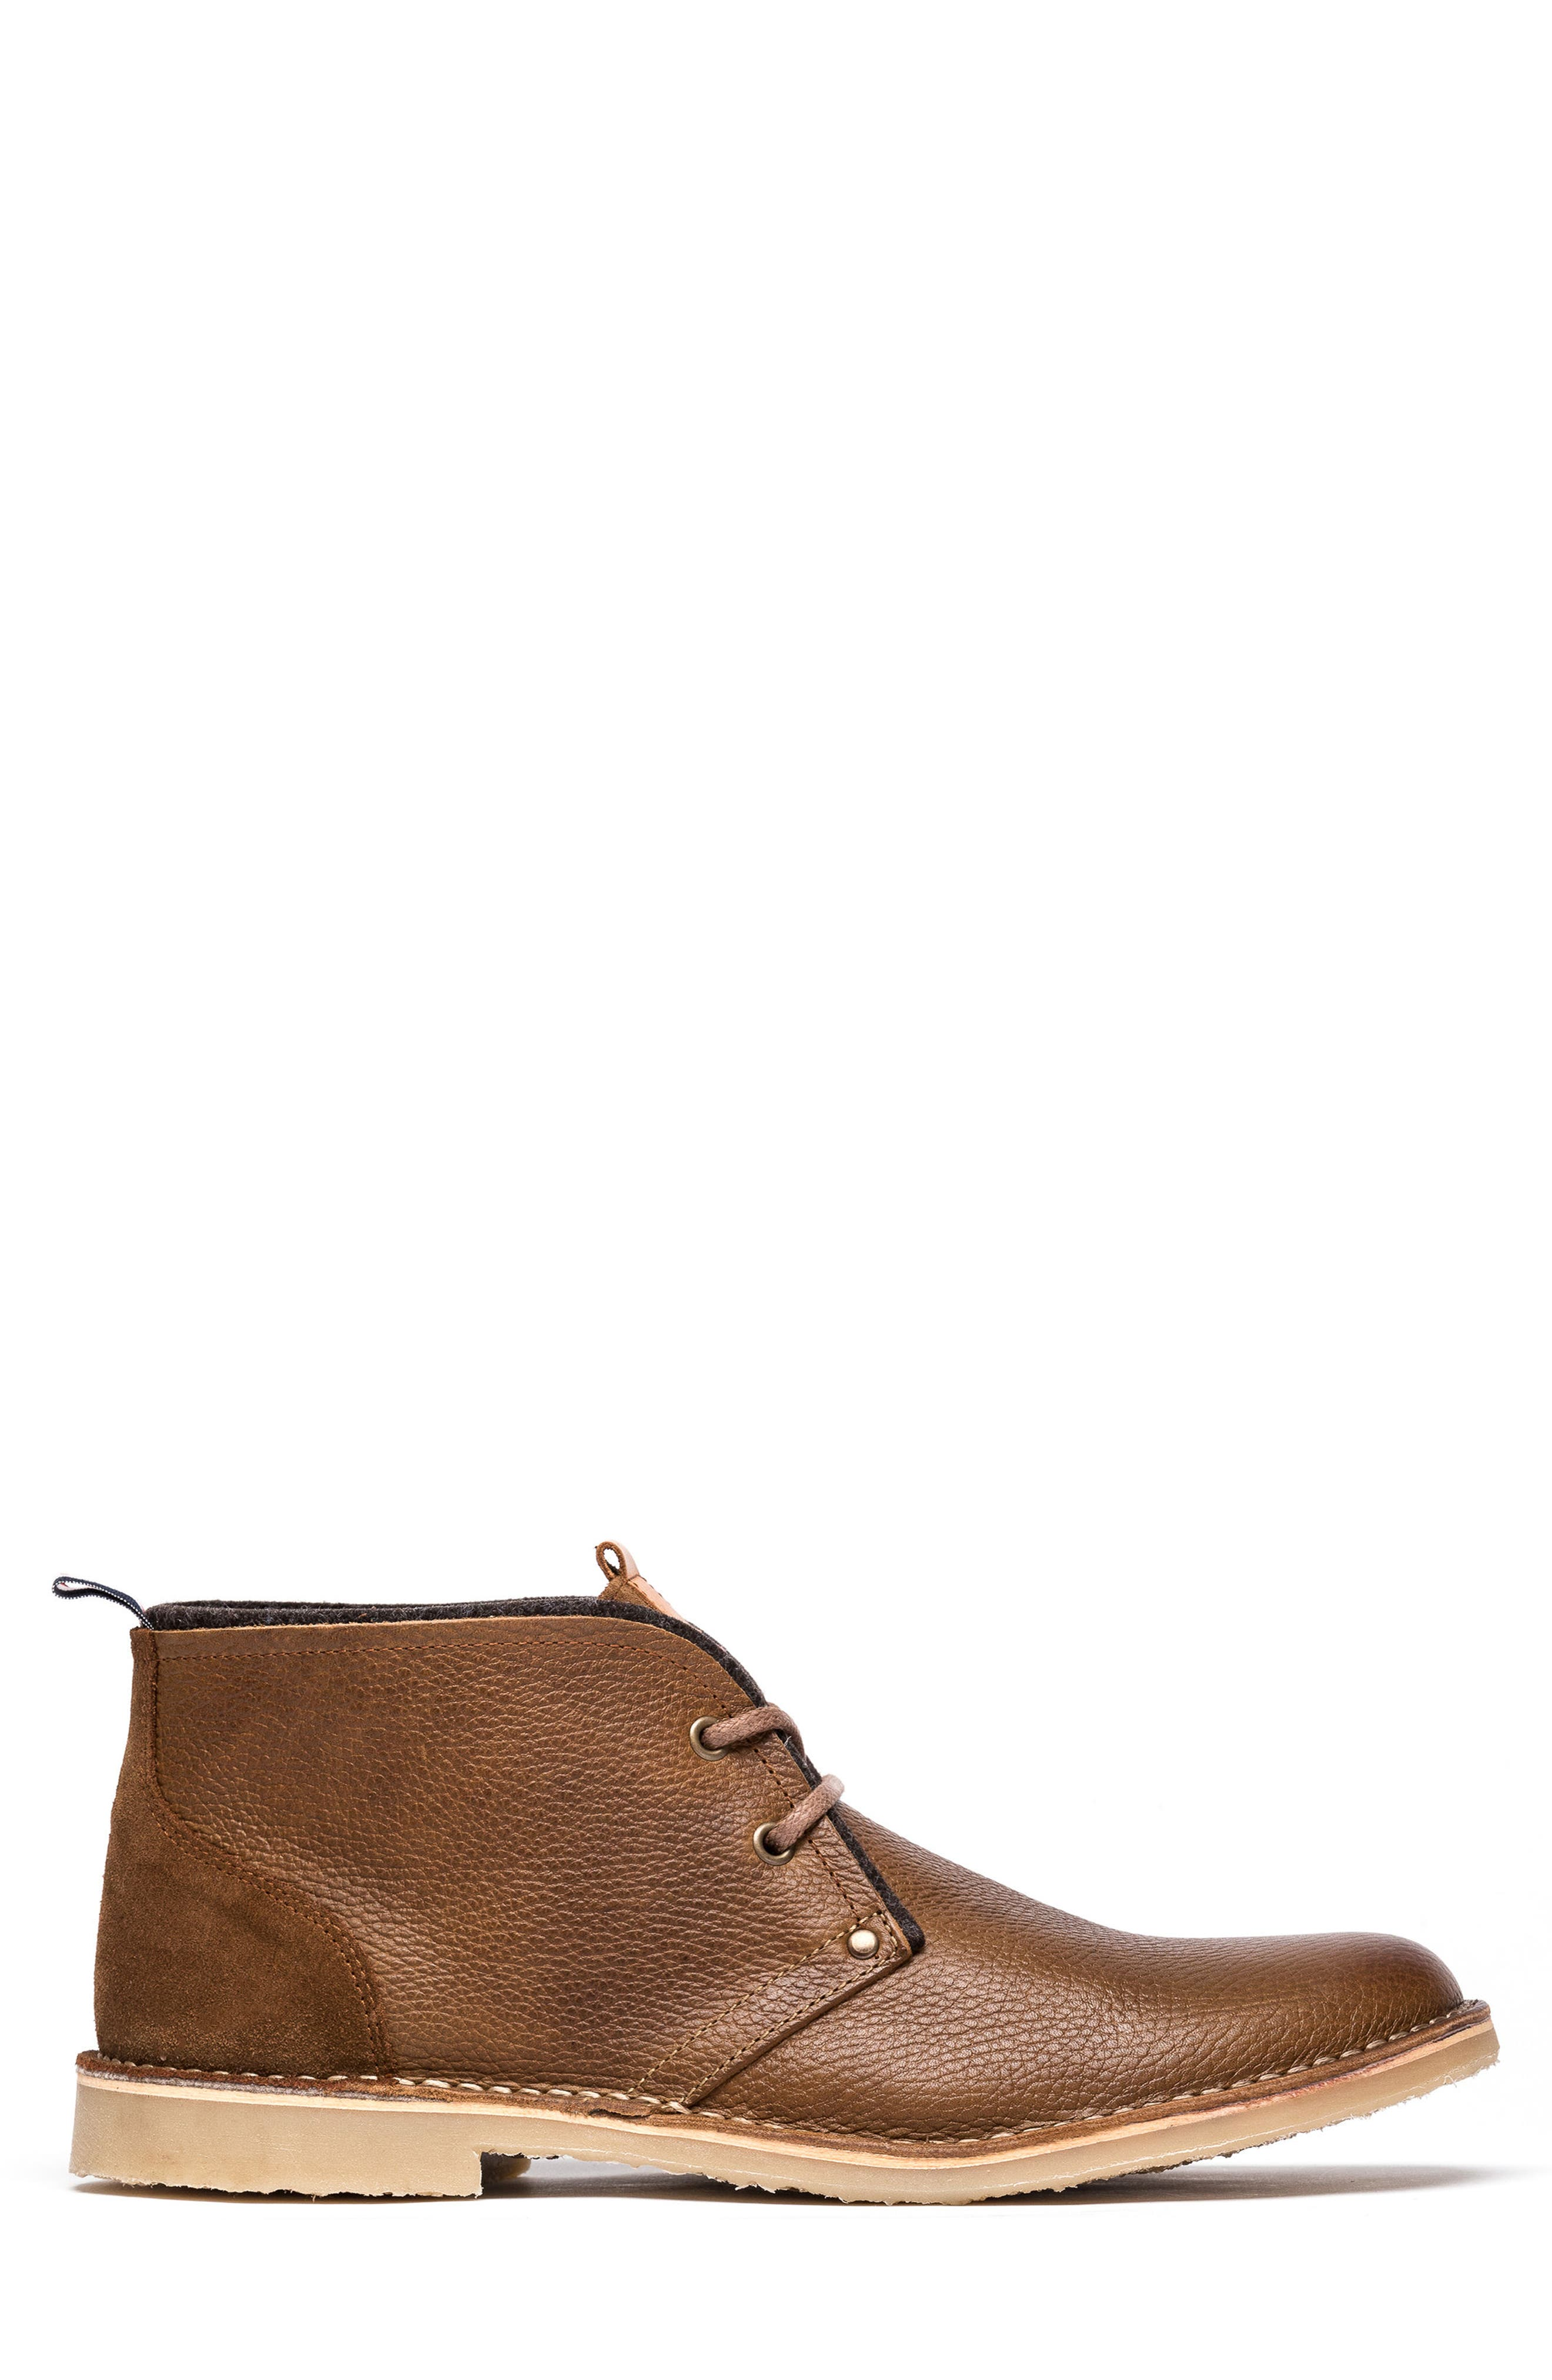 Drury Chukka Boot,                             Alternate thumbnail 3, color,                             218